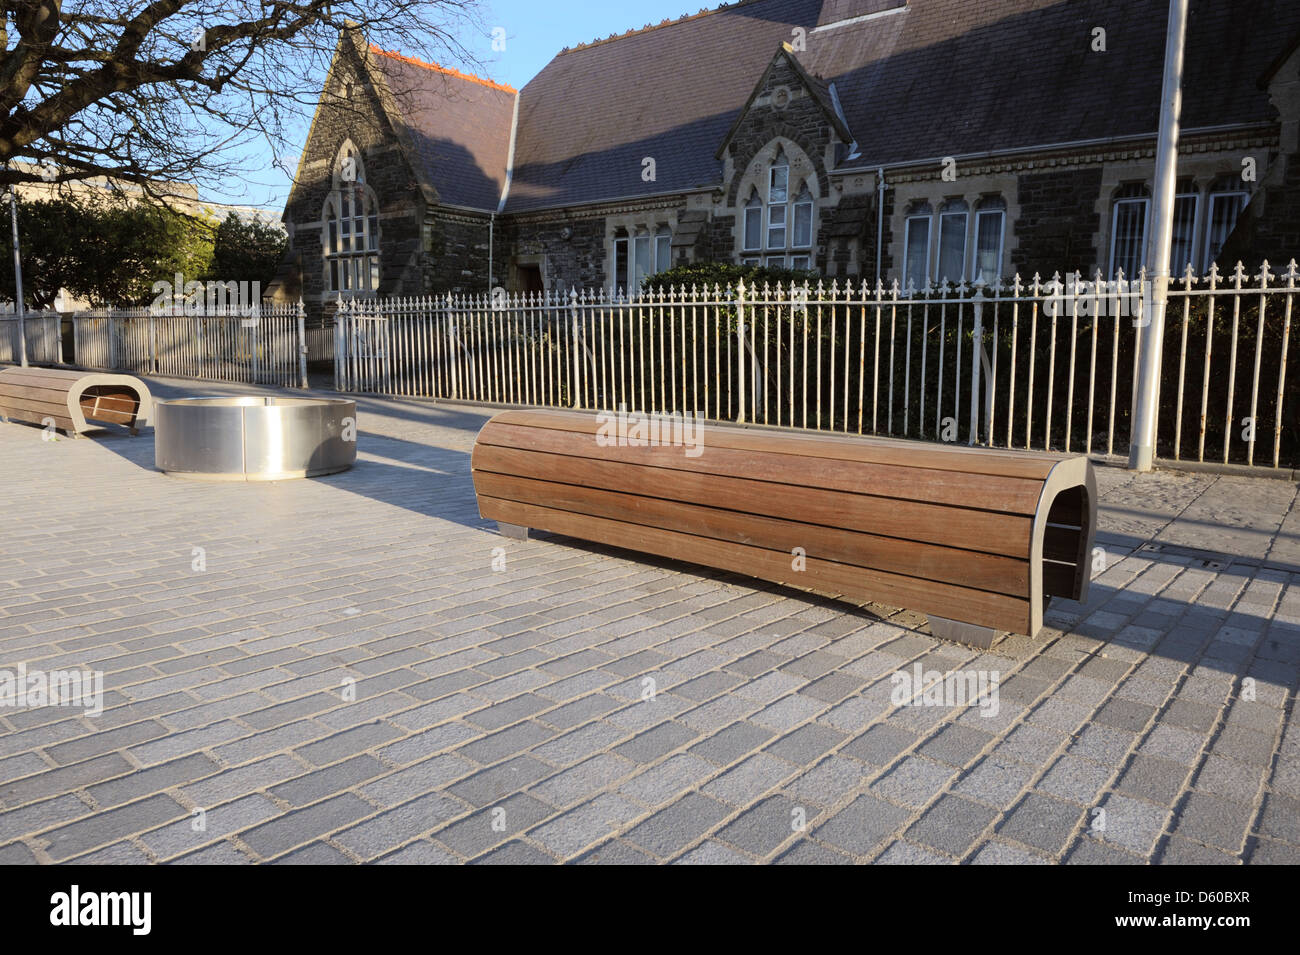 New steel and wood street furniture, Aberystwyth, Wales, UK Stock Photo